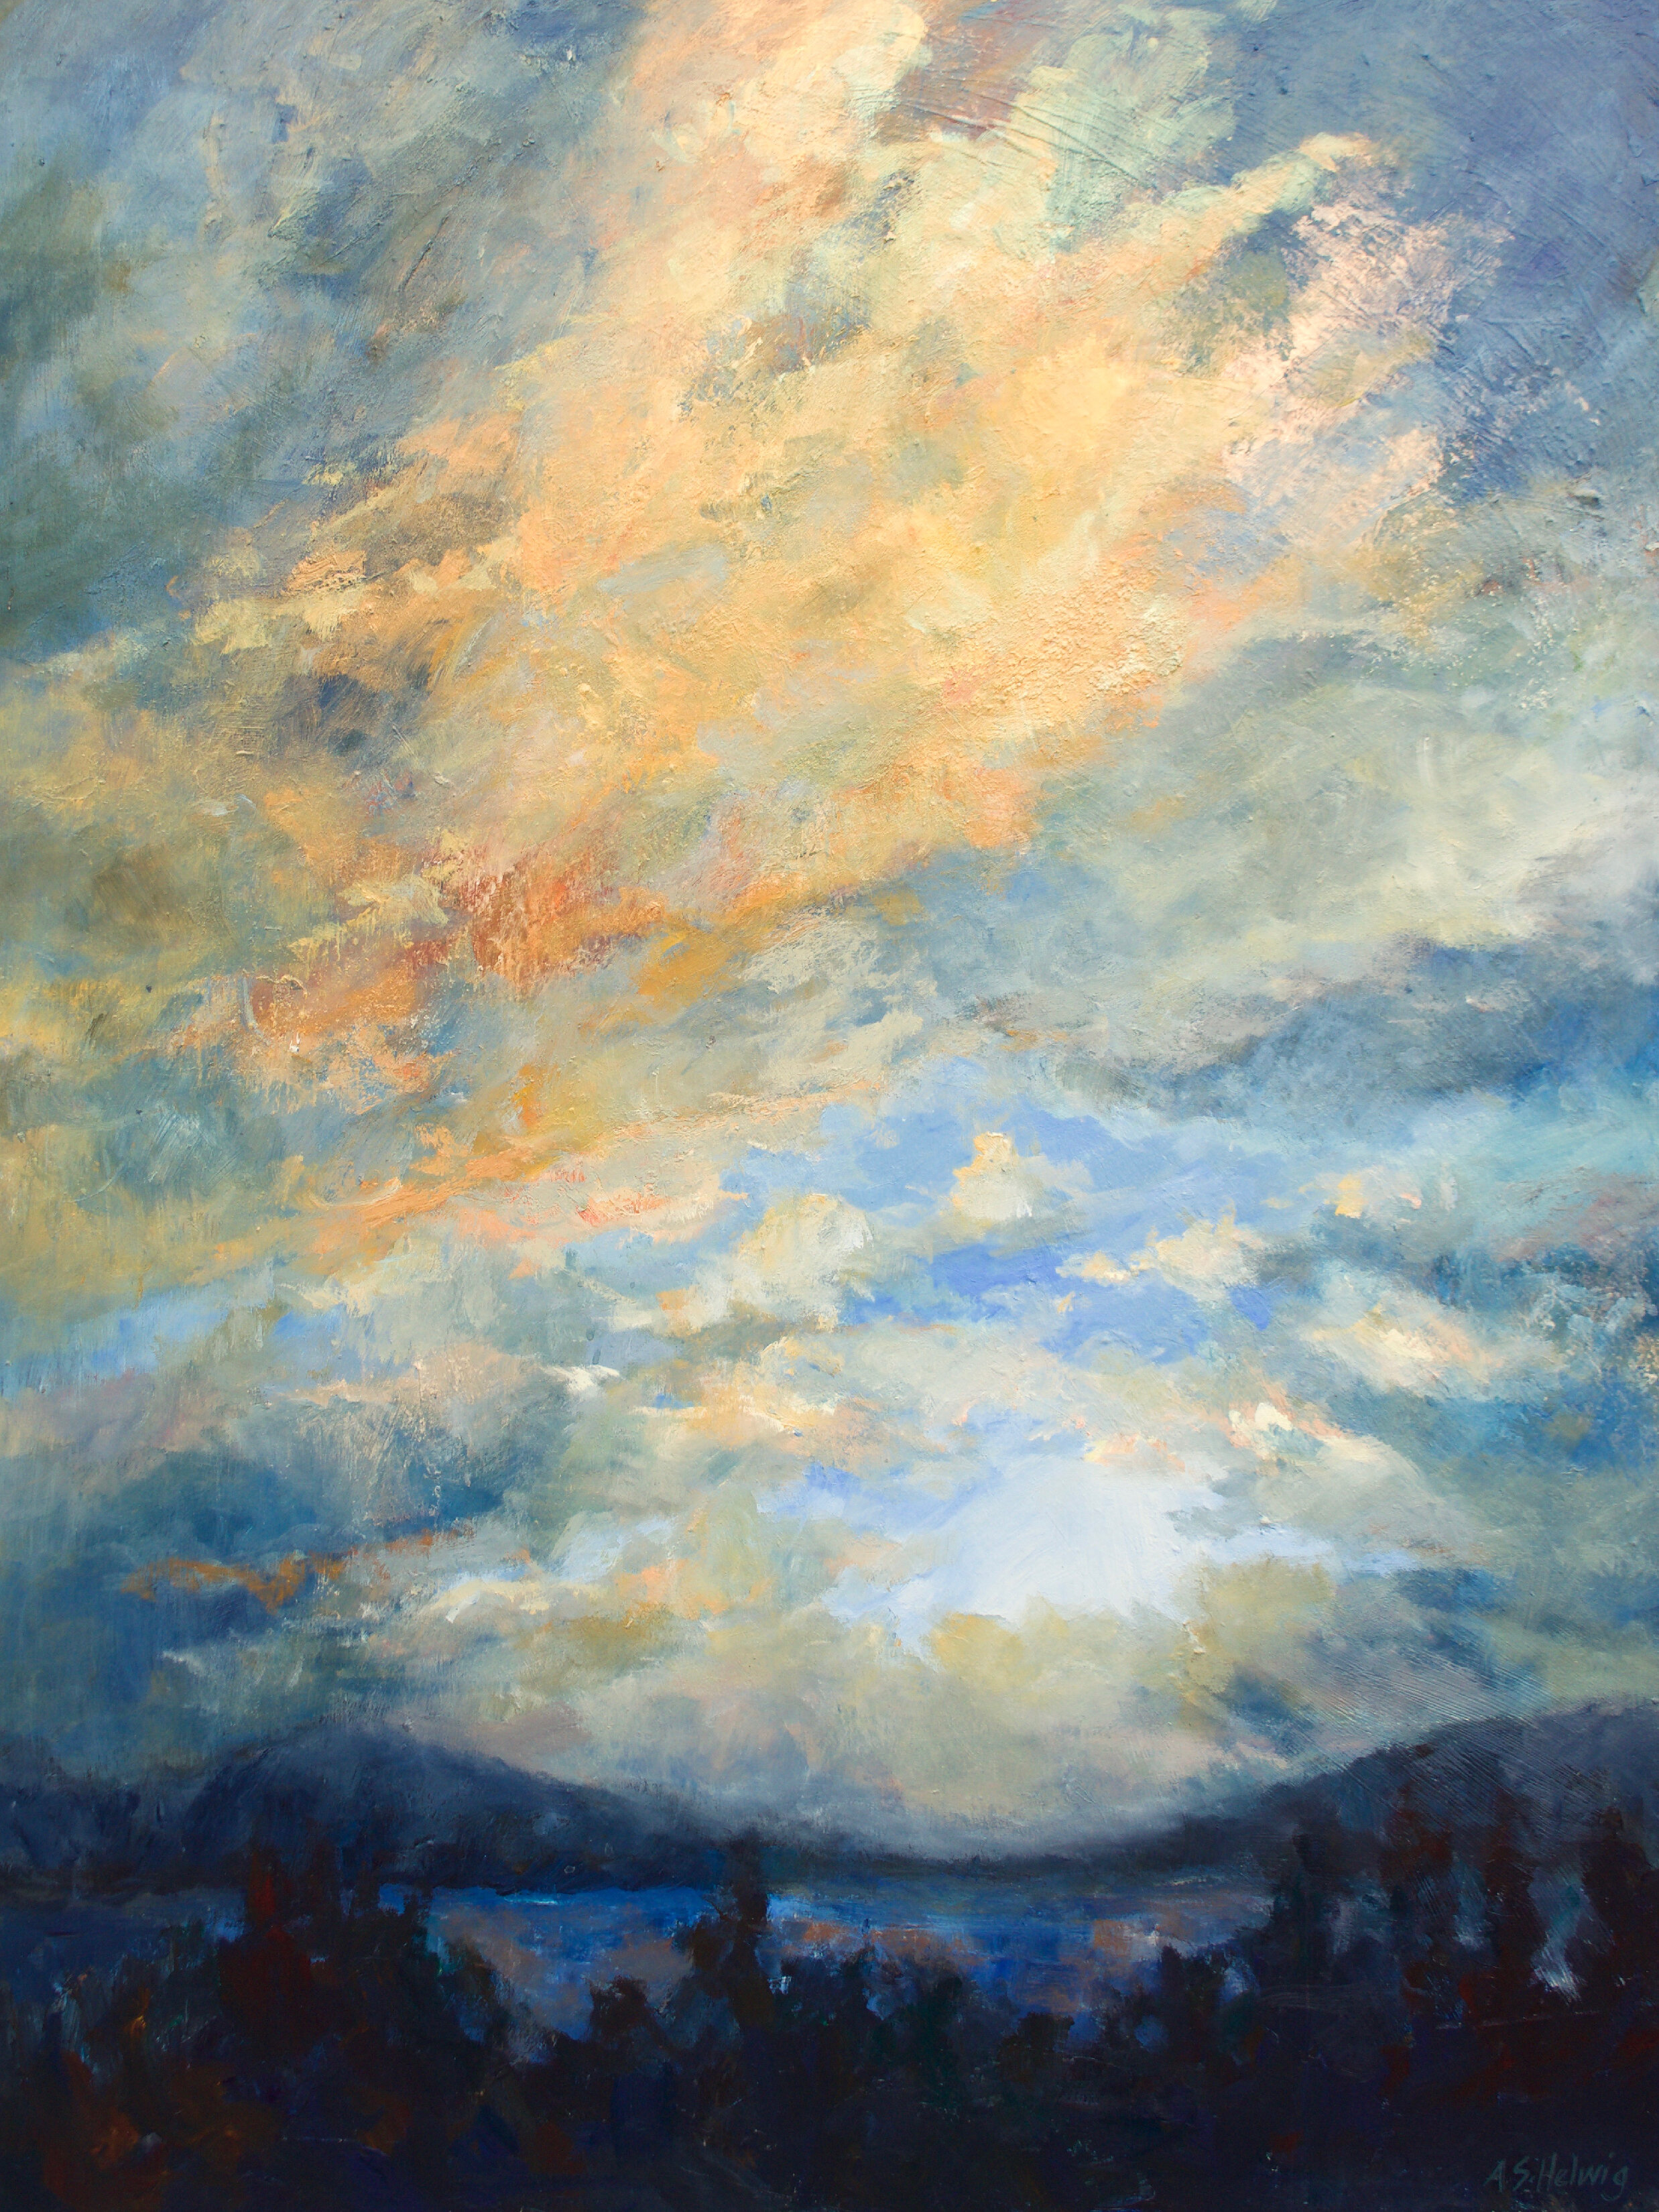 Hints and secrets  are tossed into the air:  how to capture the sky,  how to render the stretch,  the fish-eyed views,  the mountain-hummed horizon,  the clouds that zenith  over foothills  anchored by low flights  of magpie and jay.    The New Dawn  48 x36 inches  Painted on Cradled Wood Panel  $3300 +GST  This painting is available